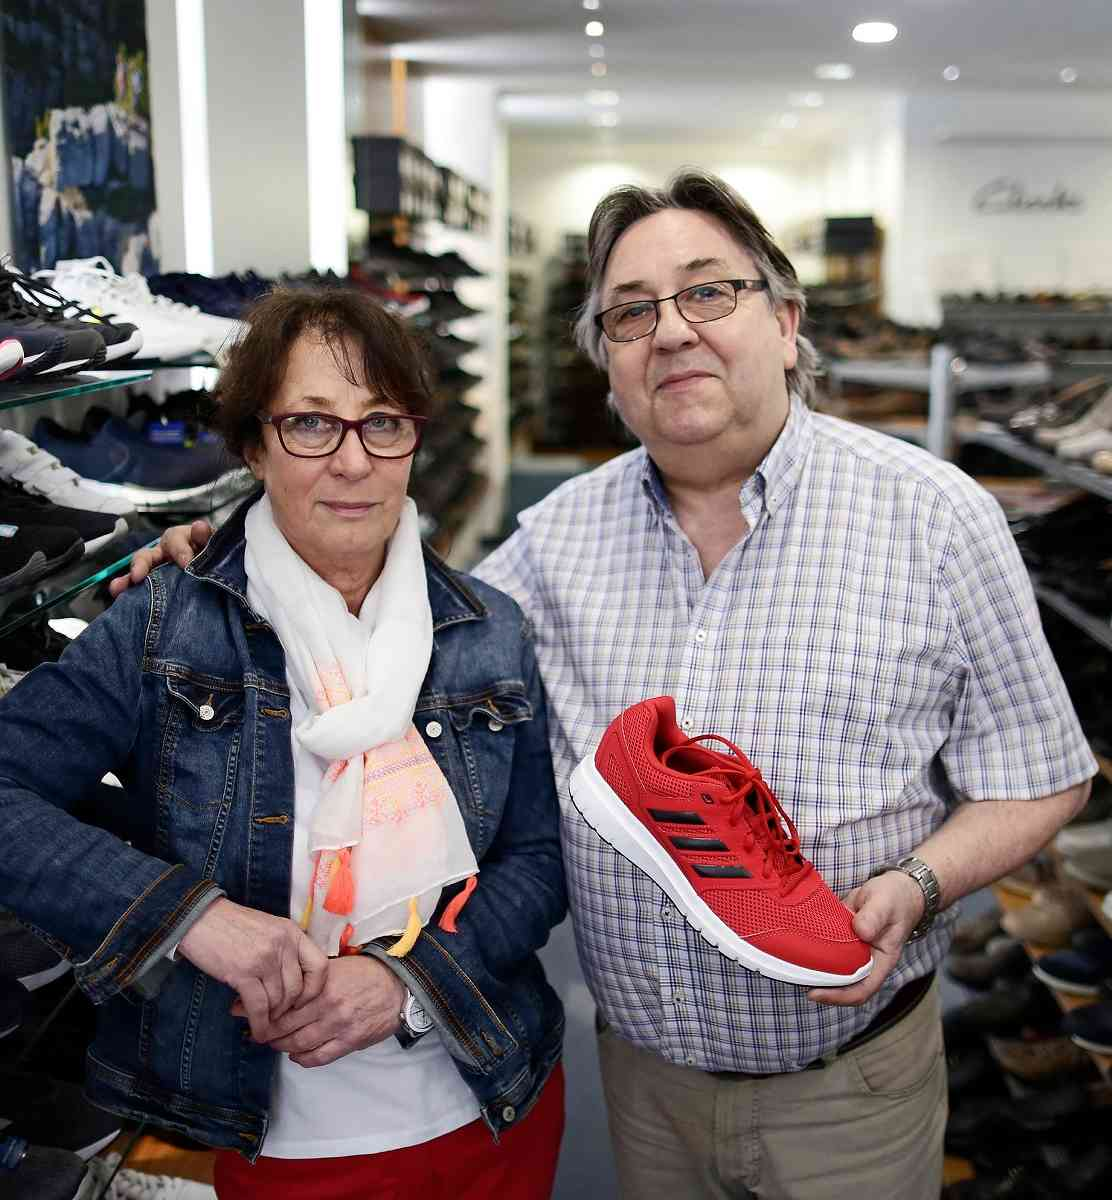 100 Jahre Schuh Tradition am Loh in Wuppertal